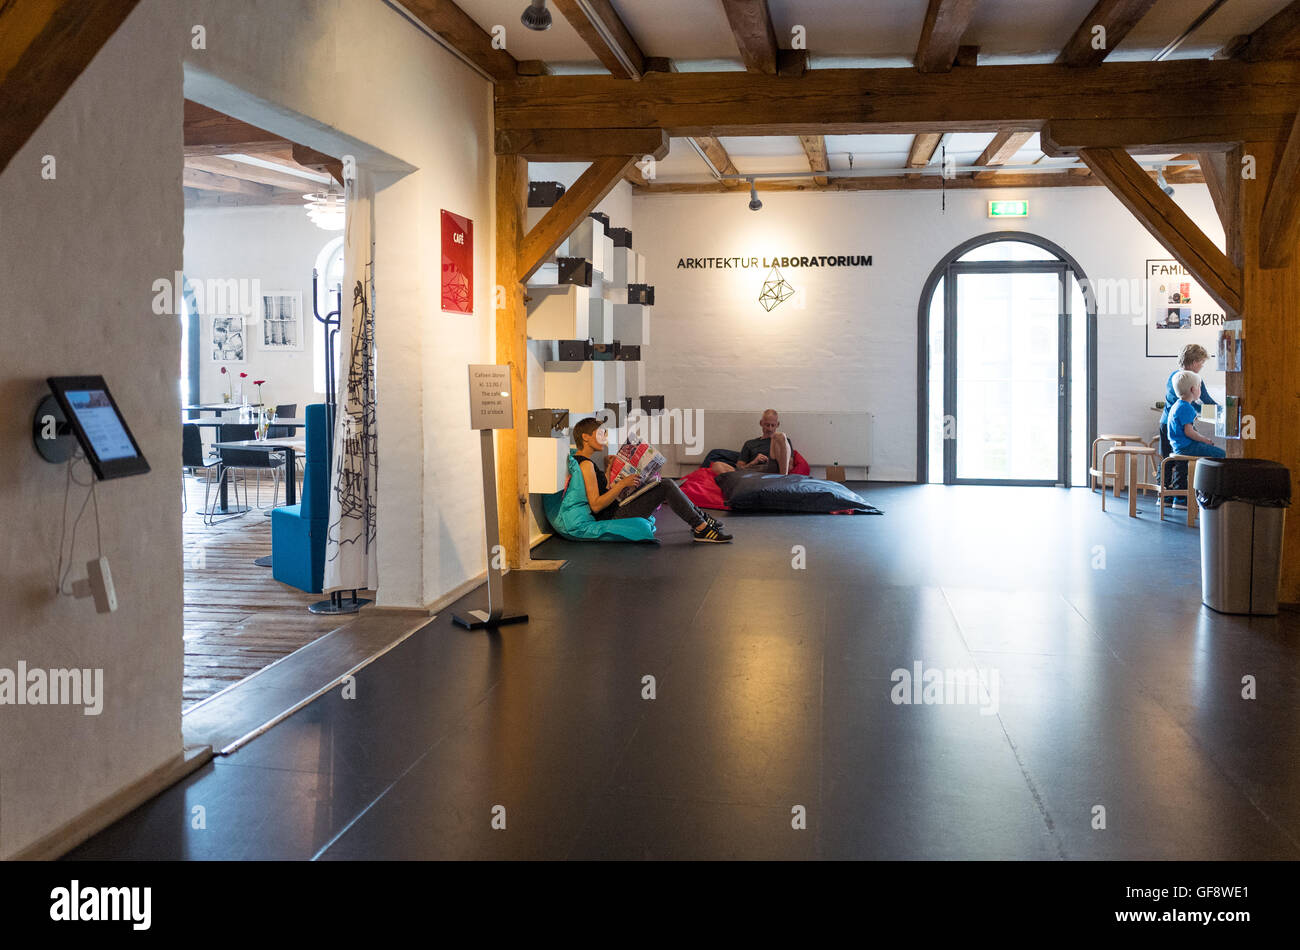 Copenhagen, Denmark - July 22, 2015: People in the relax room of the Danish Architecture Centre - Stock Image